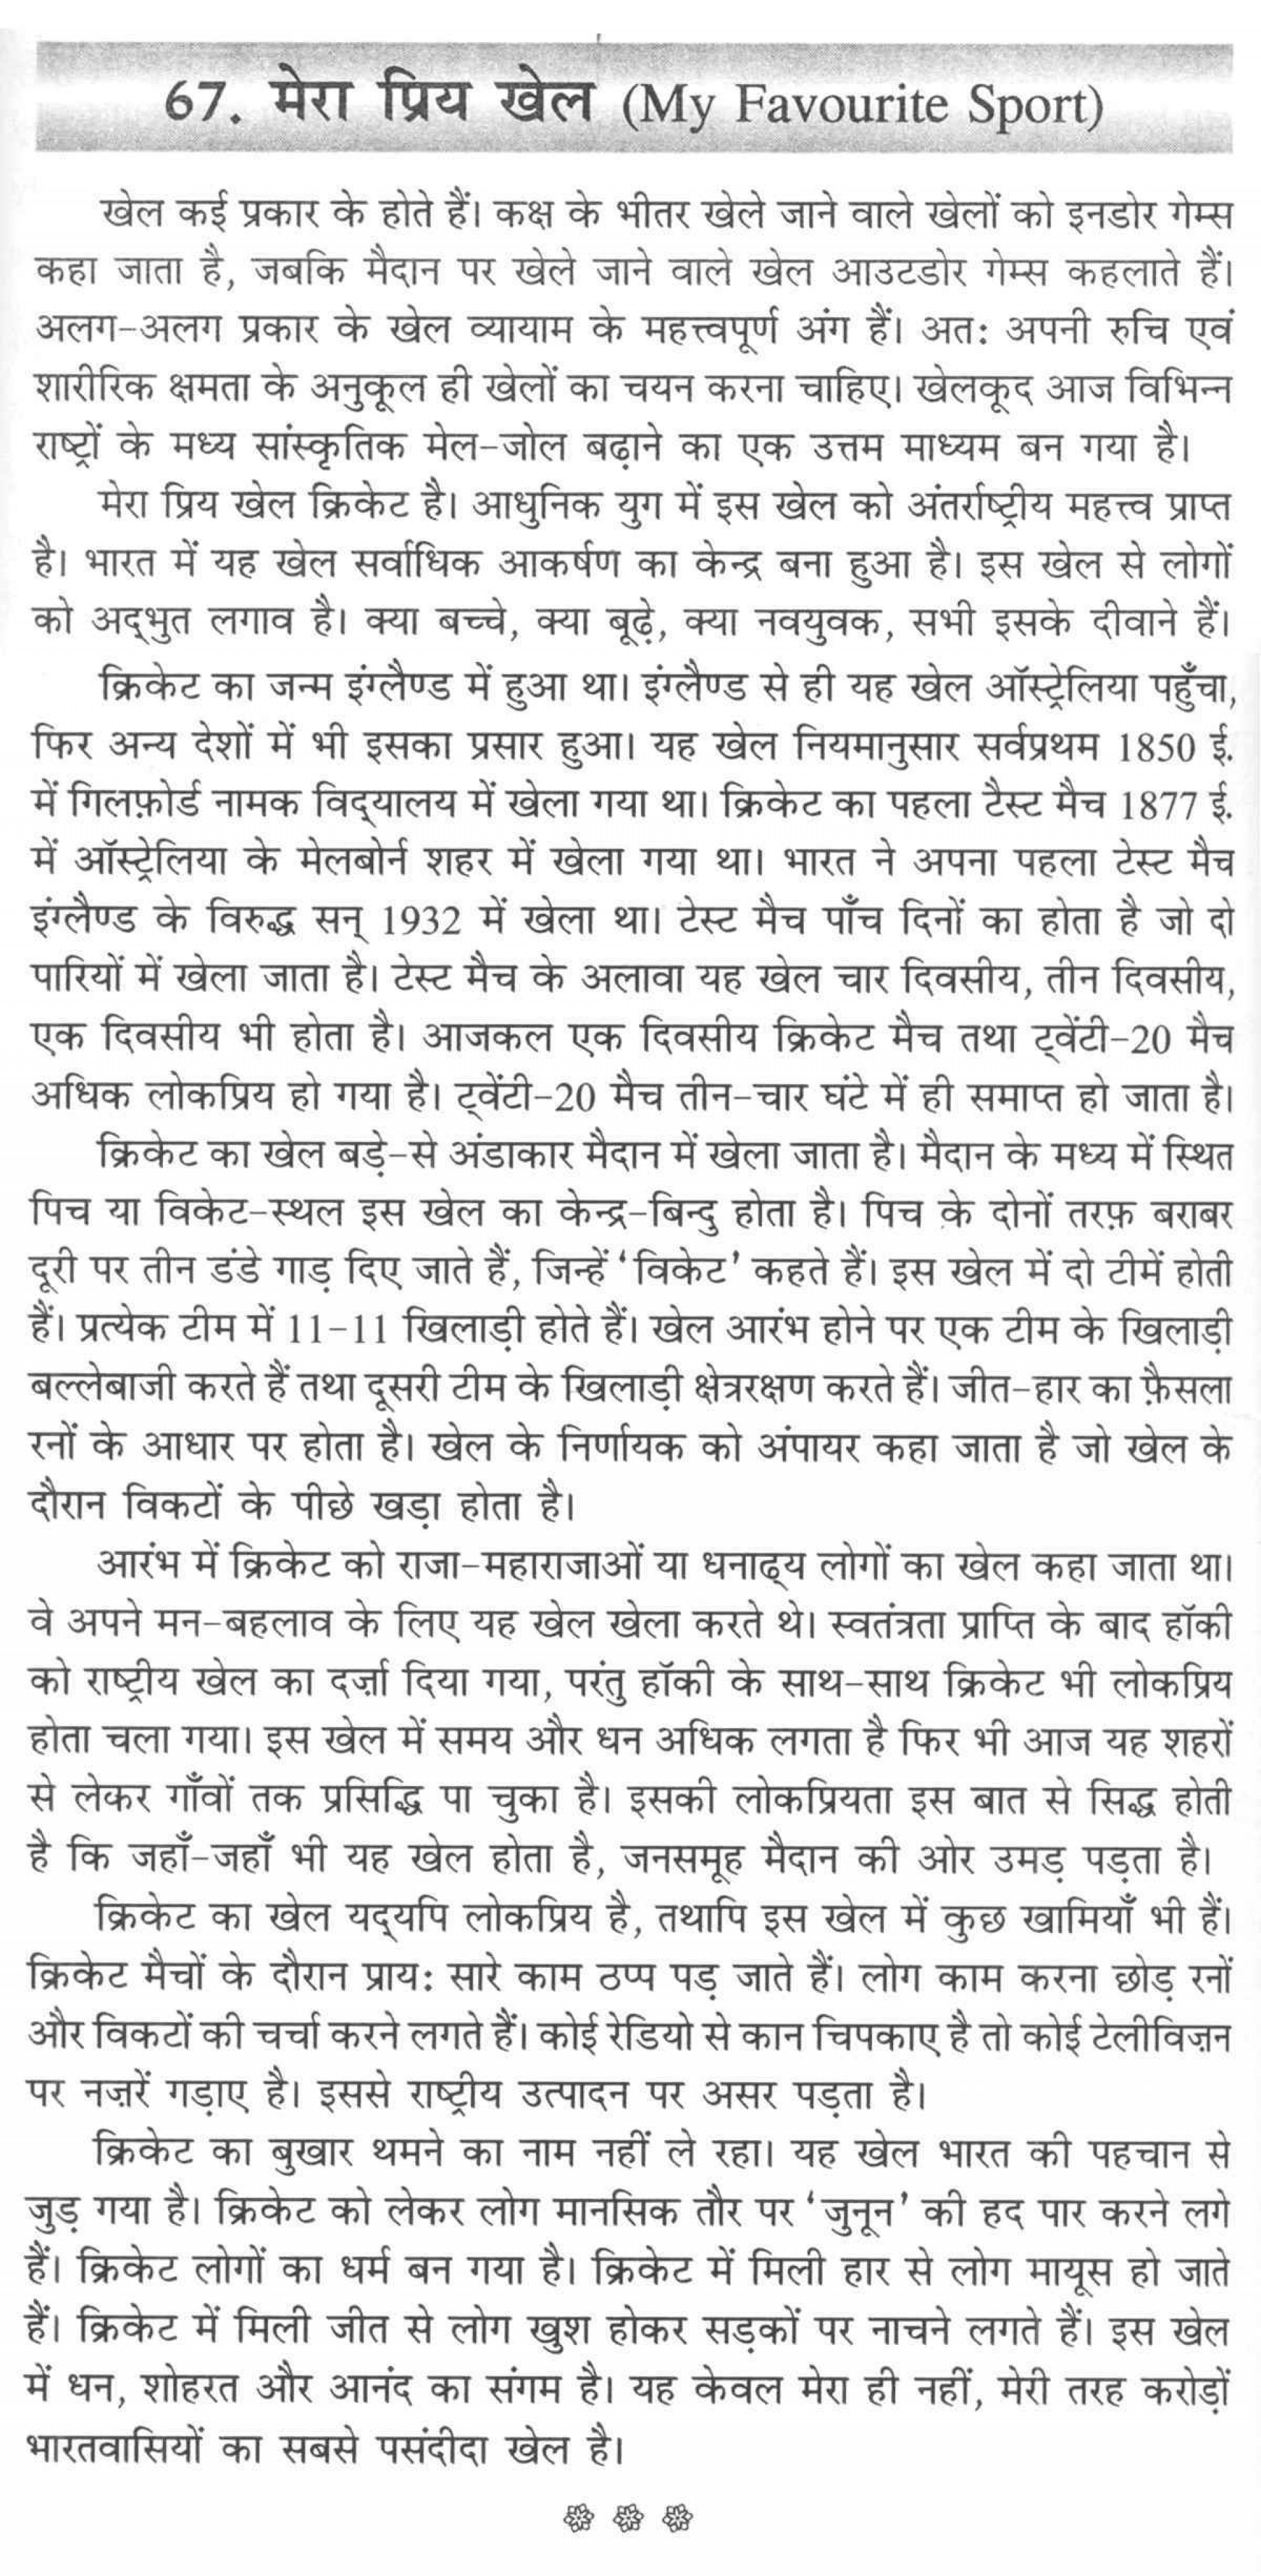 013 Essay Example Aa67 Thumb On Ipl In Impressive Hindi 2017 Cricket Match 1920